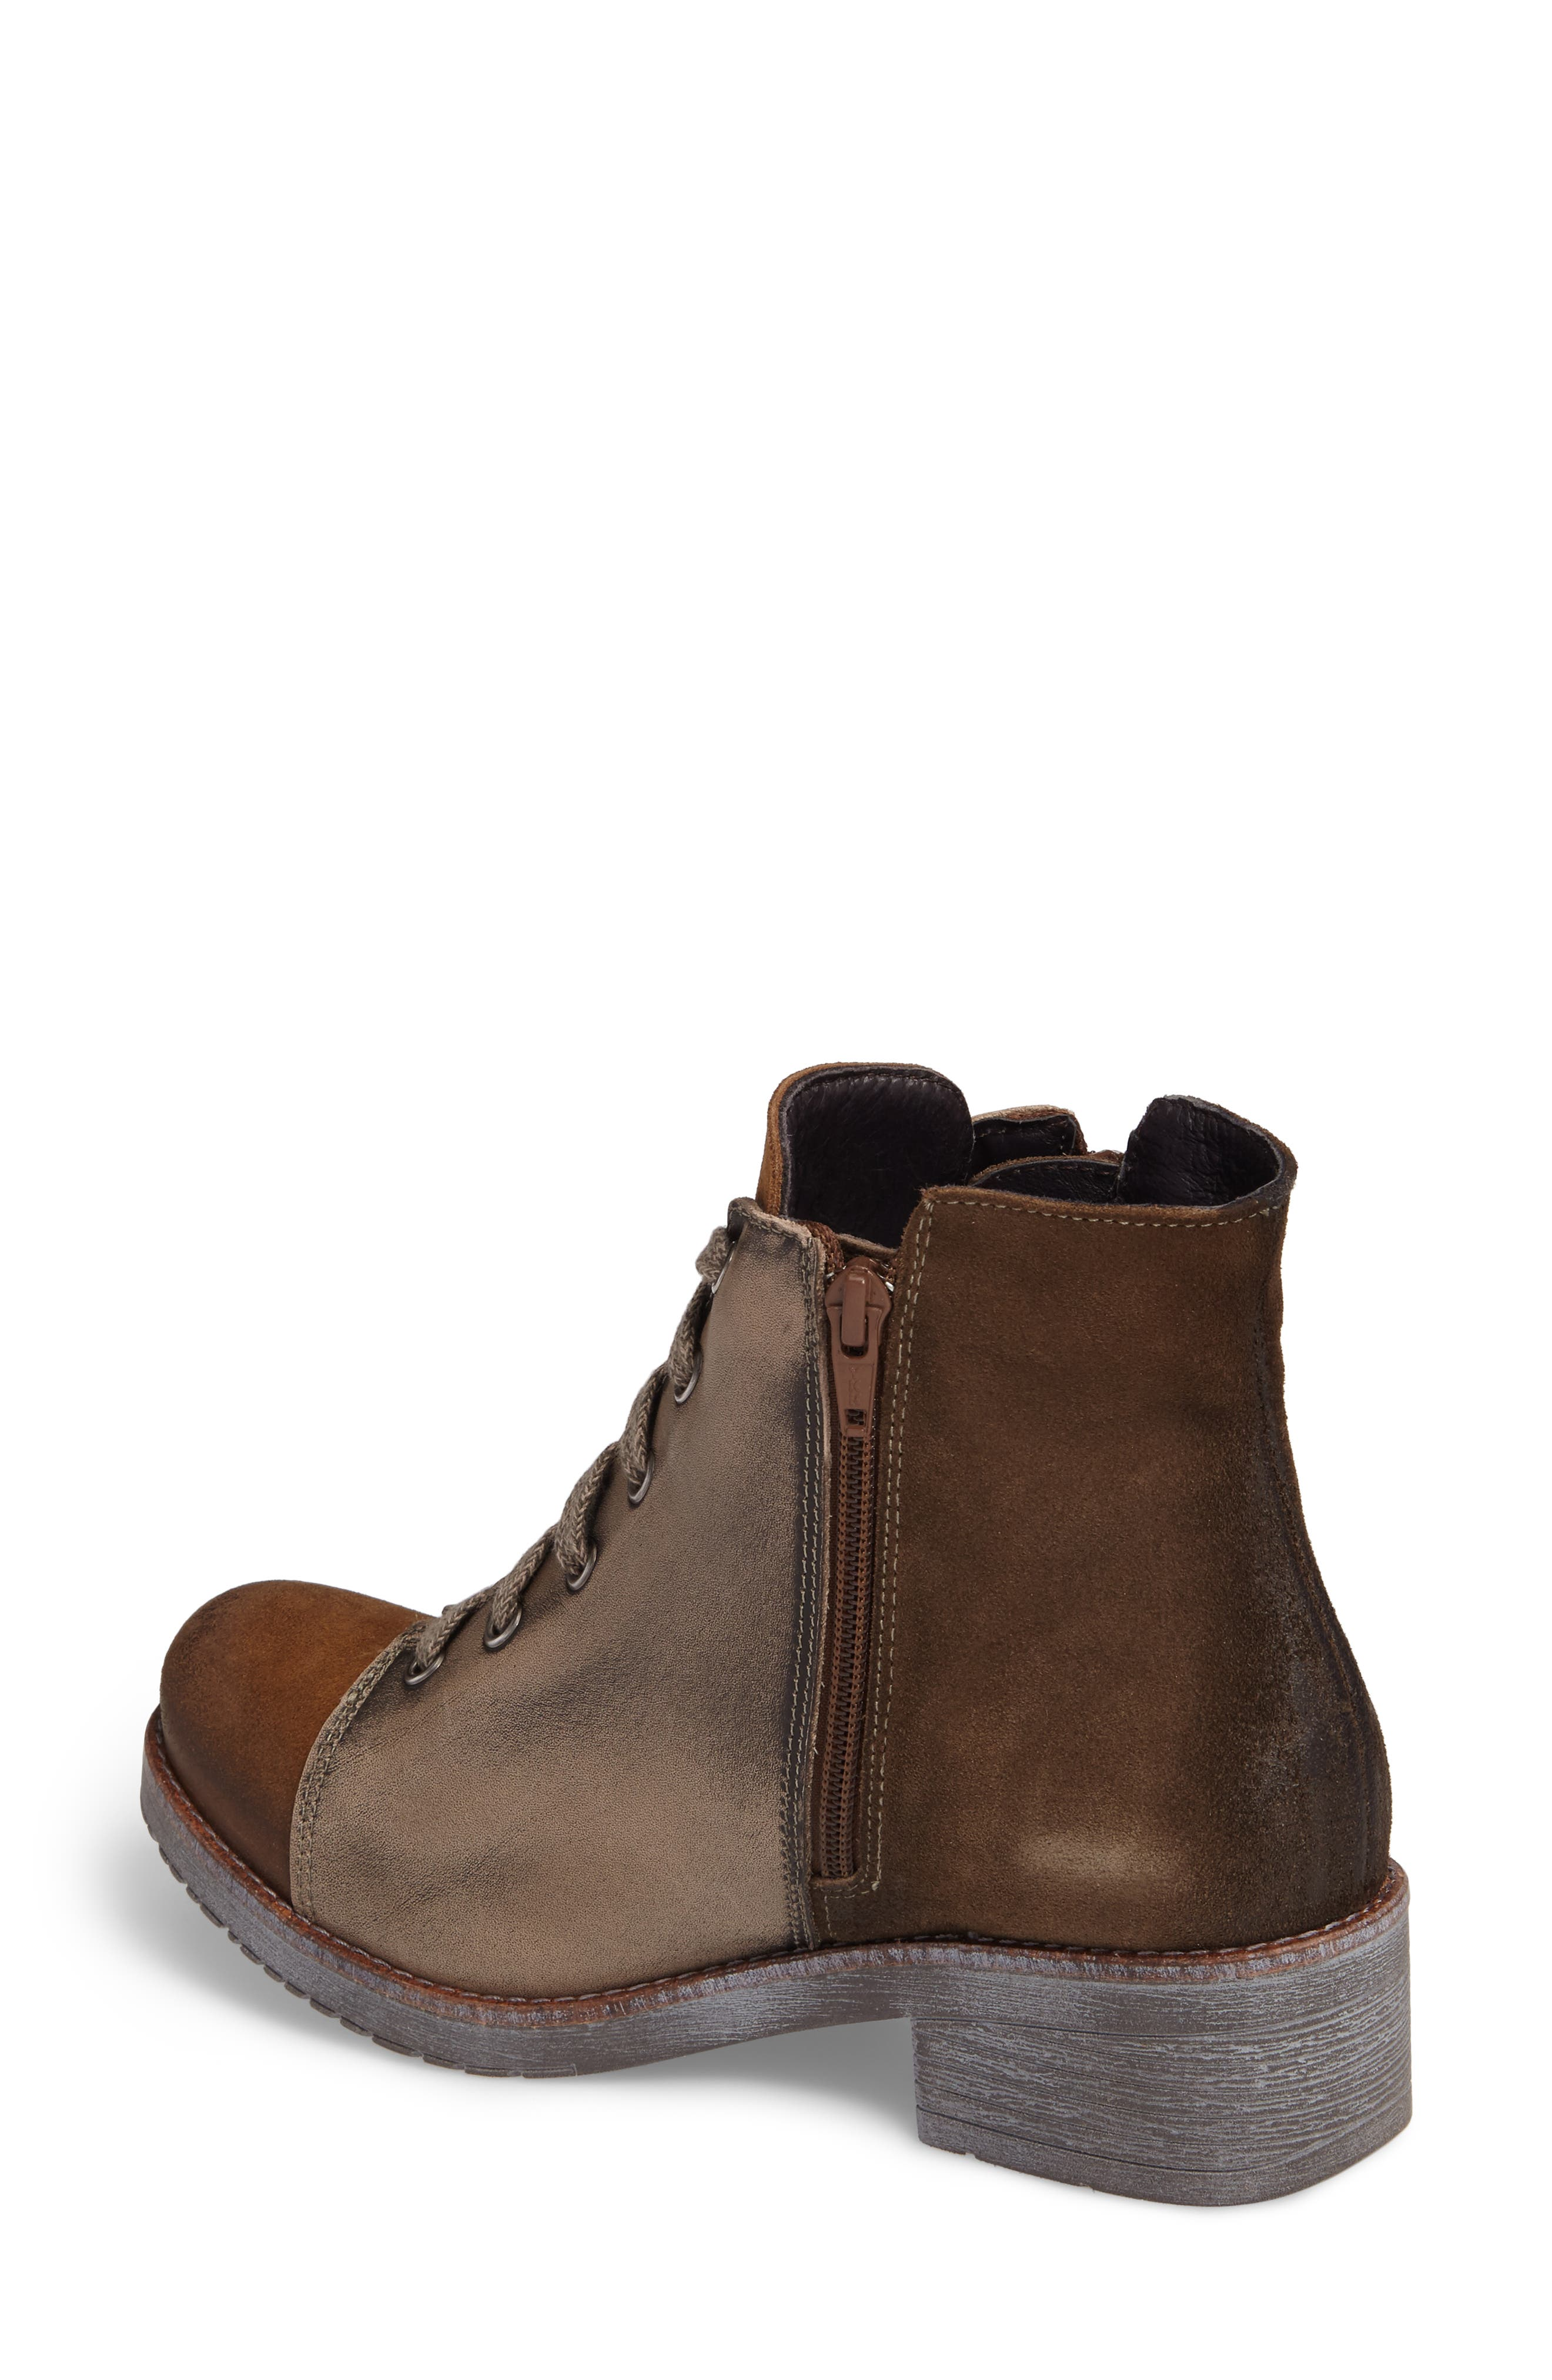 Alternate Image 2  - Naot Groovy Lace Up Bootie (Women)